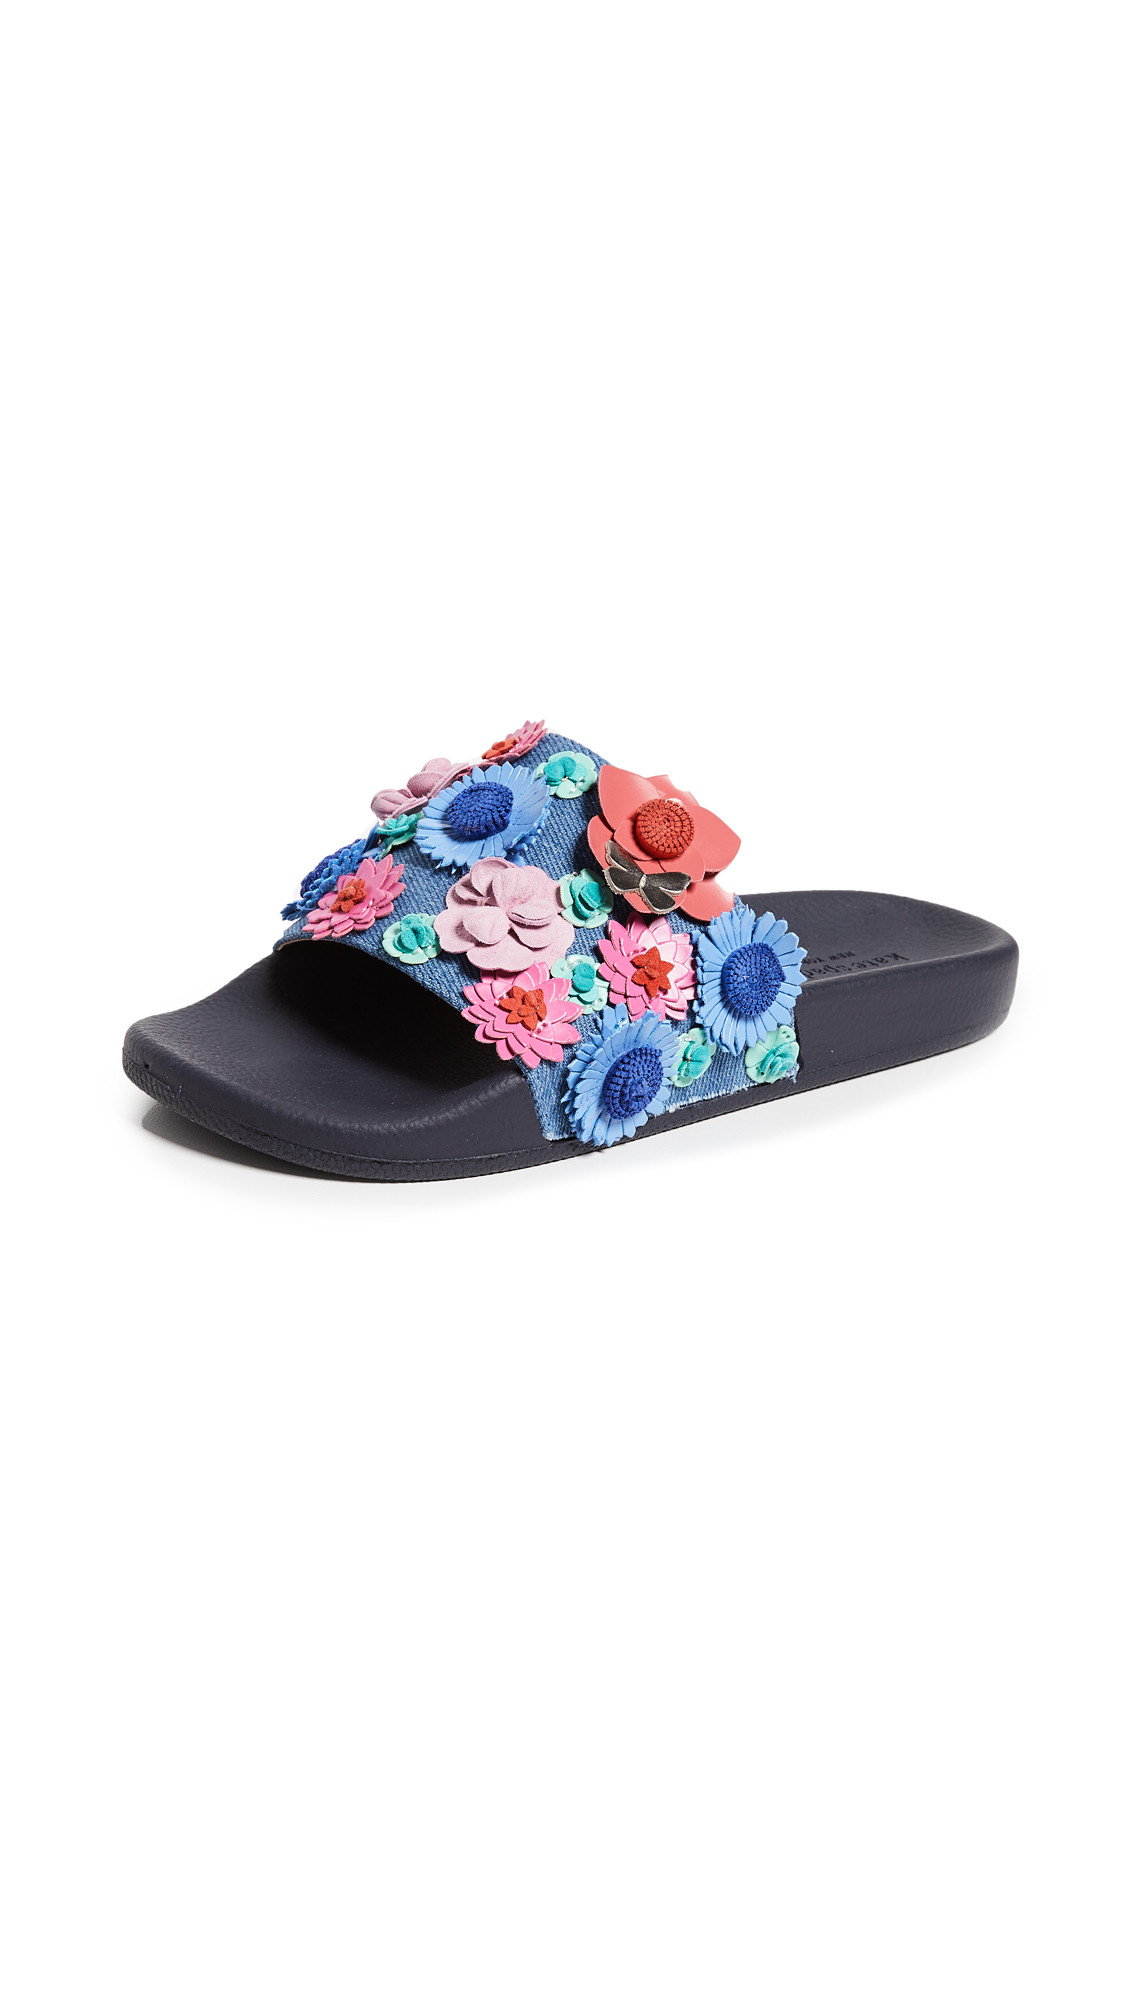 SKYE POOL SLIDE SANDALS